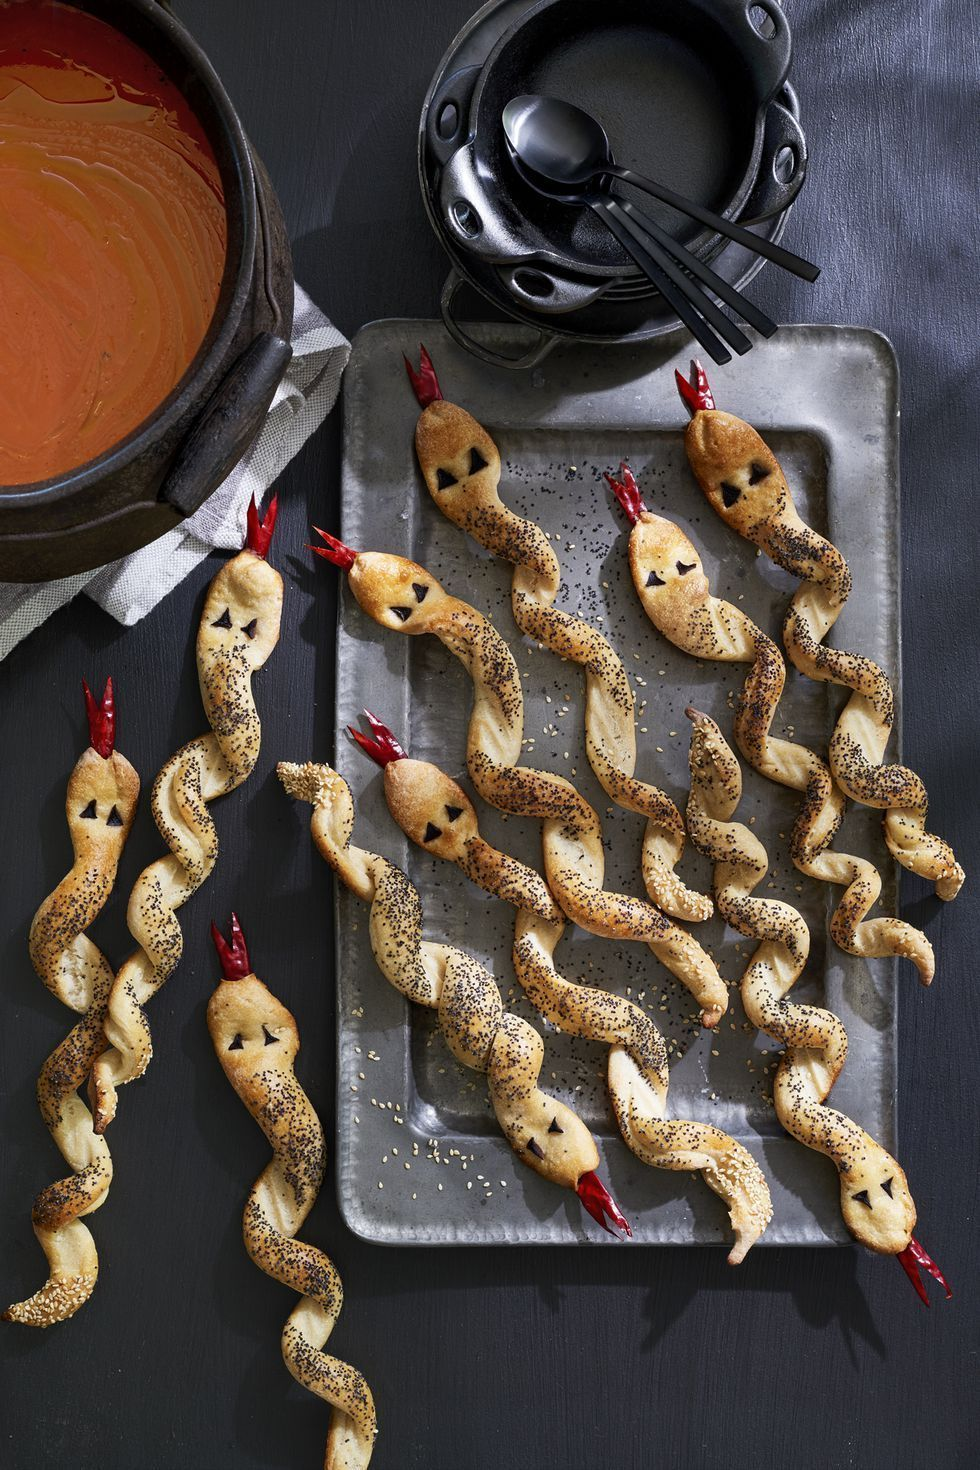 15 Easy Halloween Appetizers That Are Spooktacular - XO, Katie Rosario